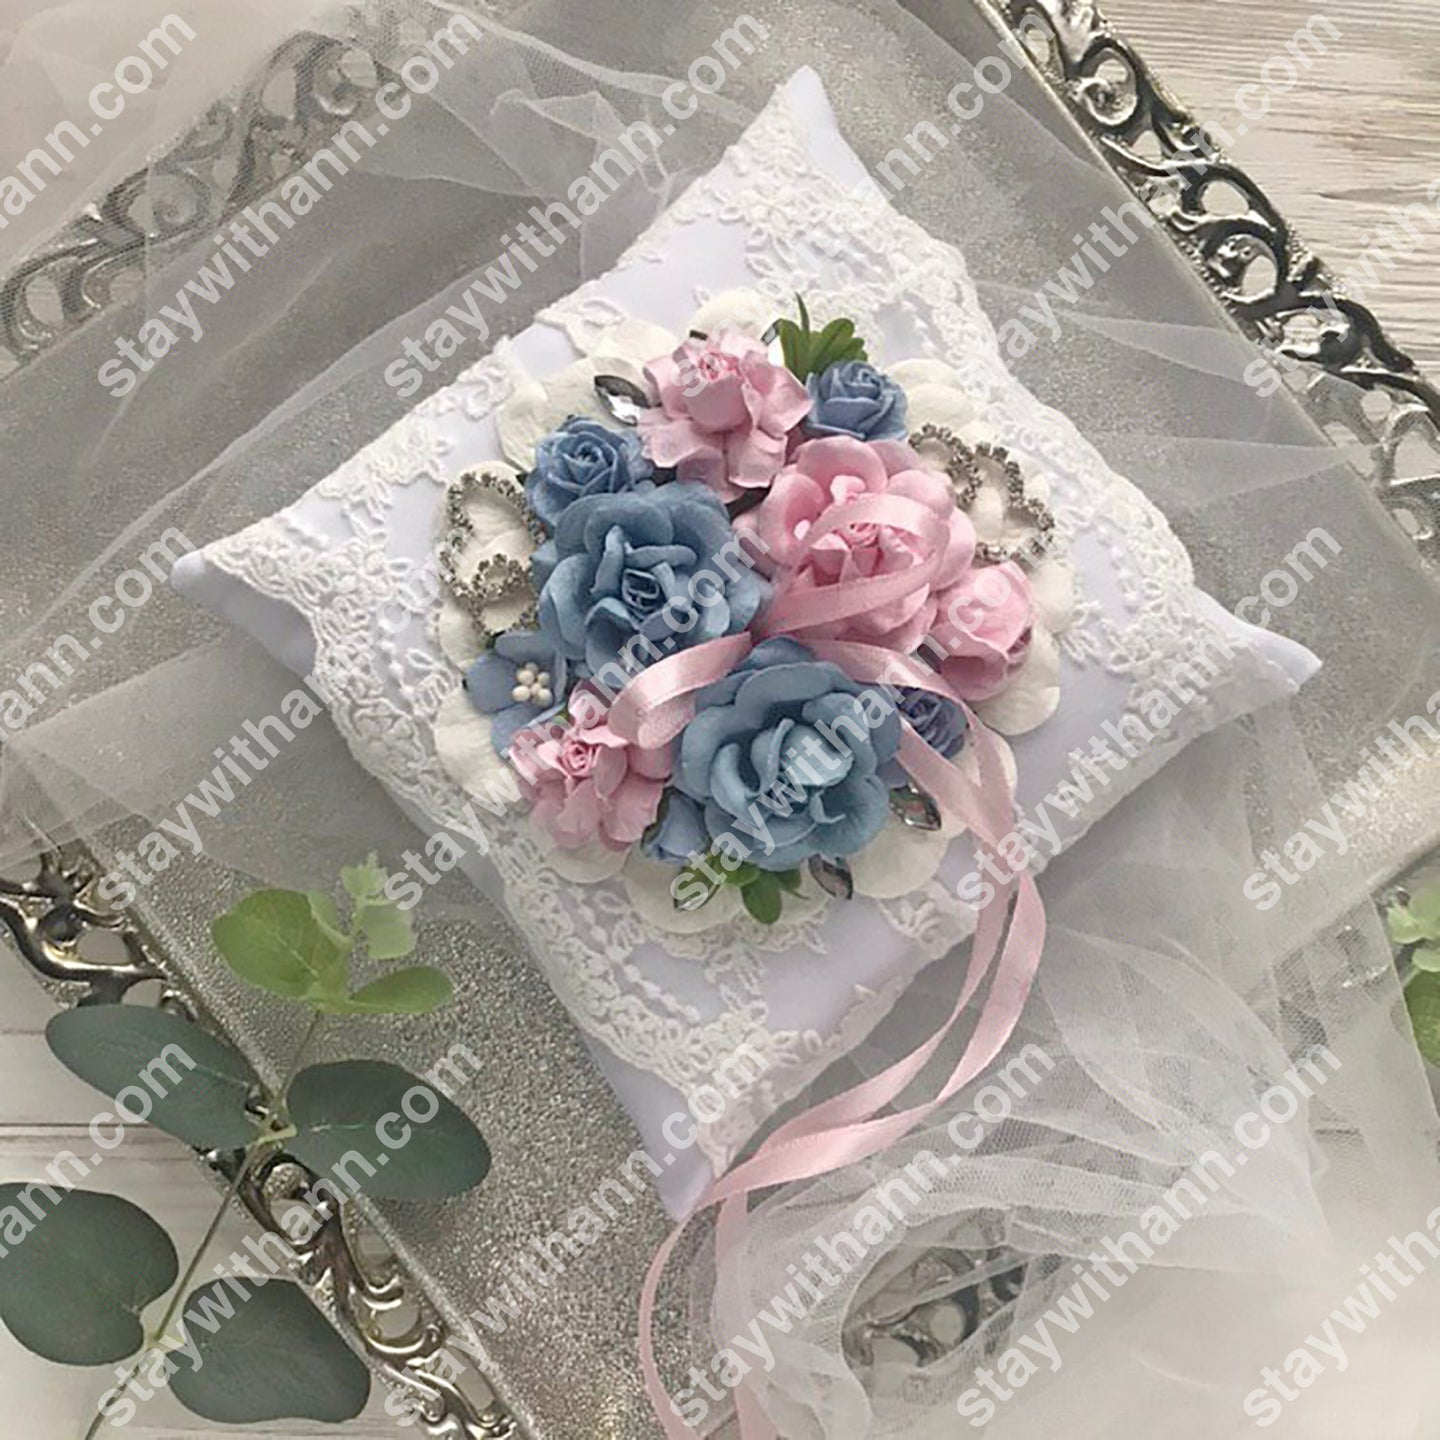 Wedding Ring Pillow Dusty Blue and Pink